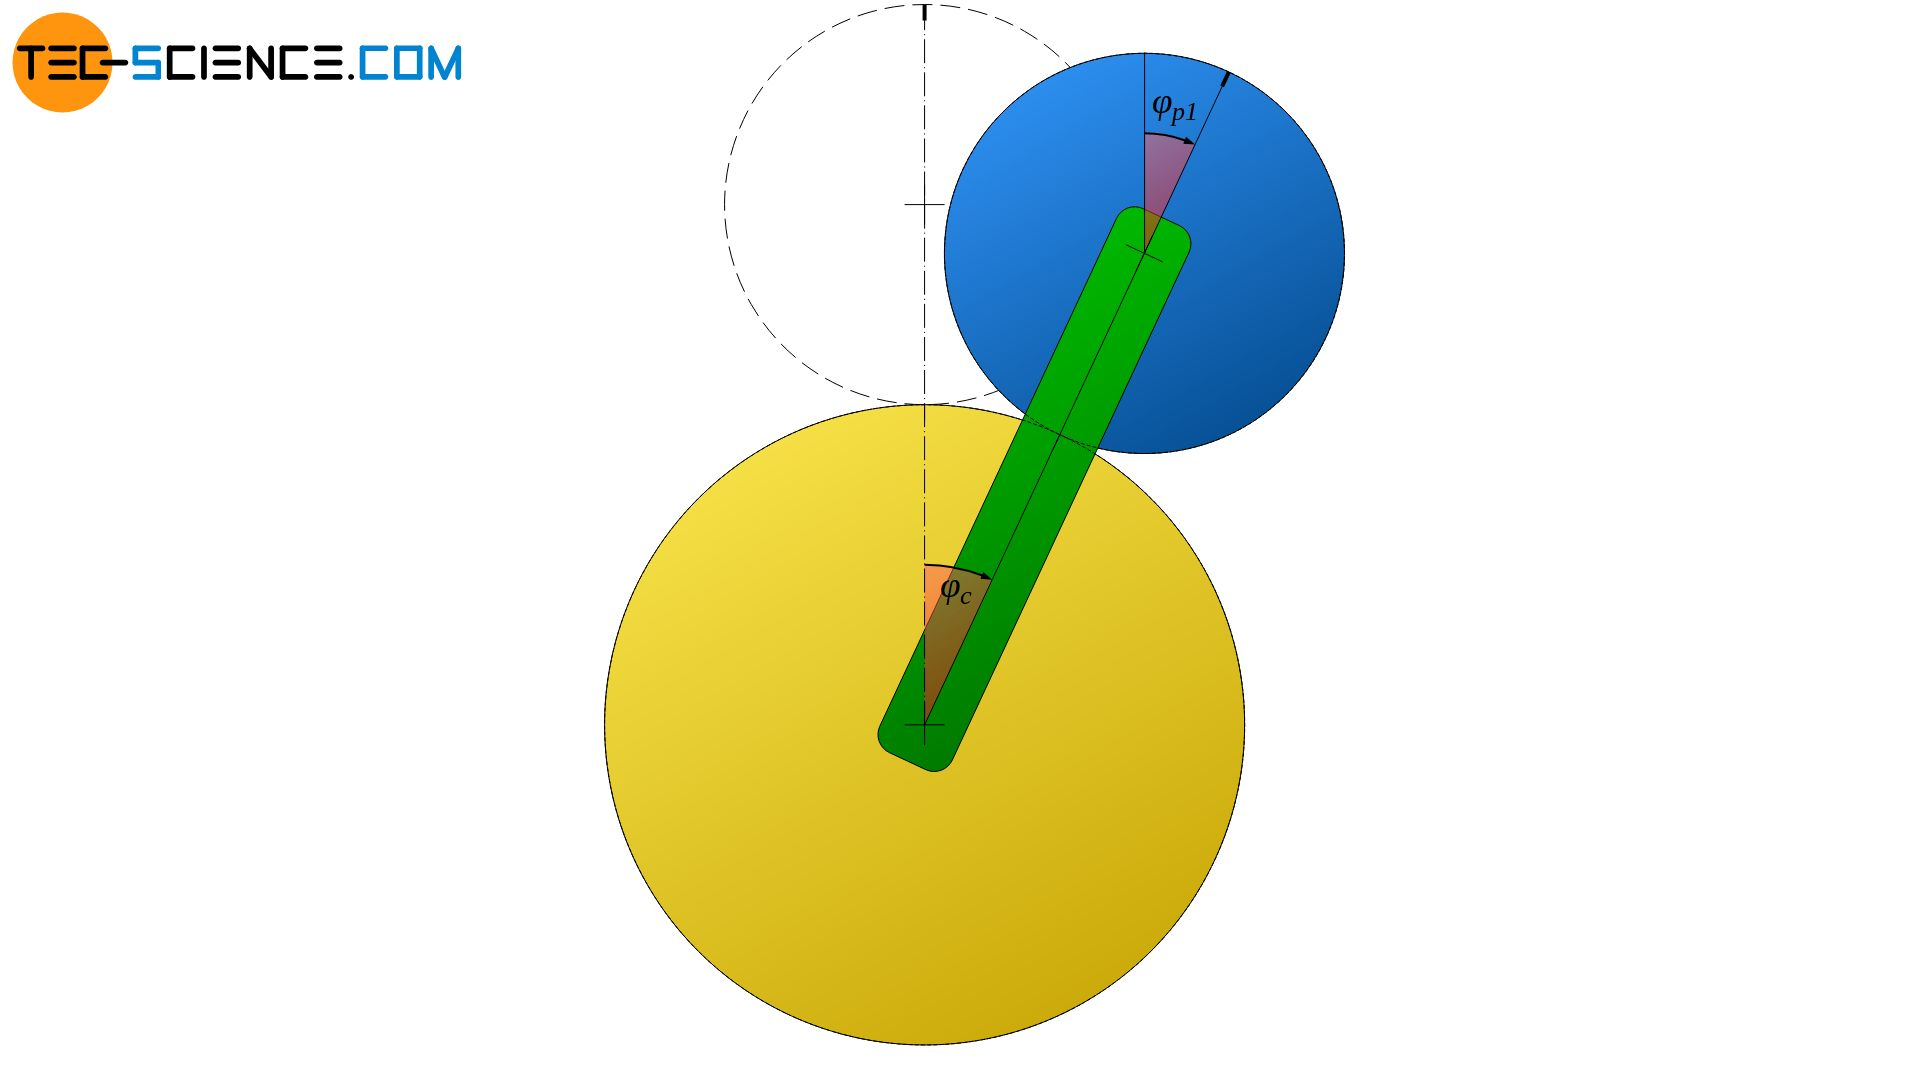 Rotation of the planet gear axis around the sun gear